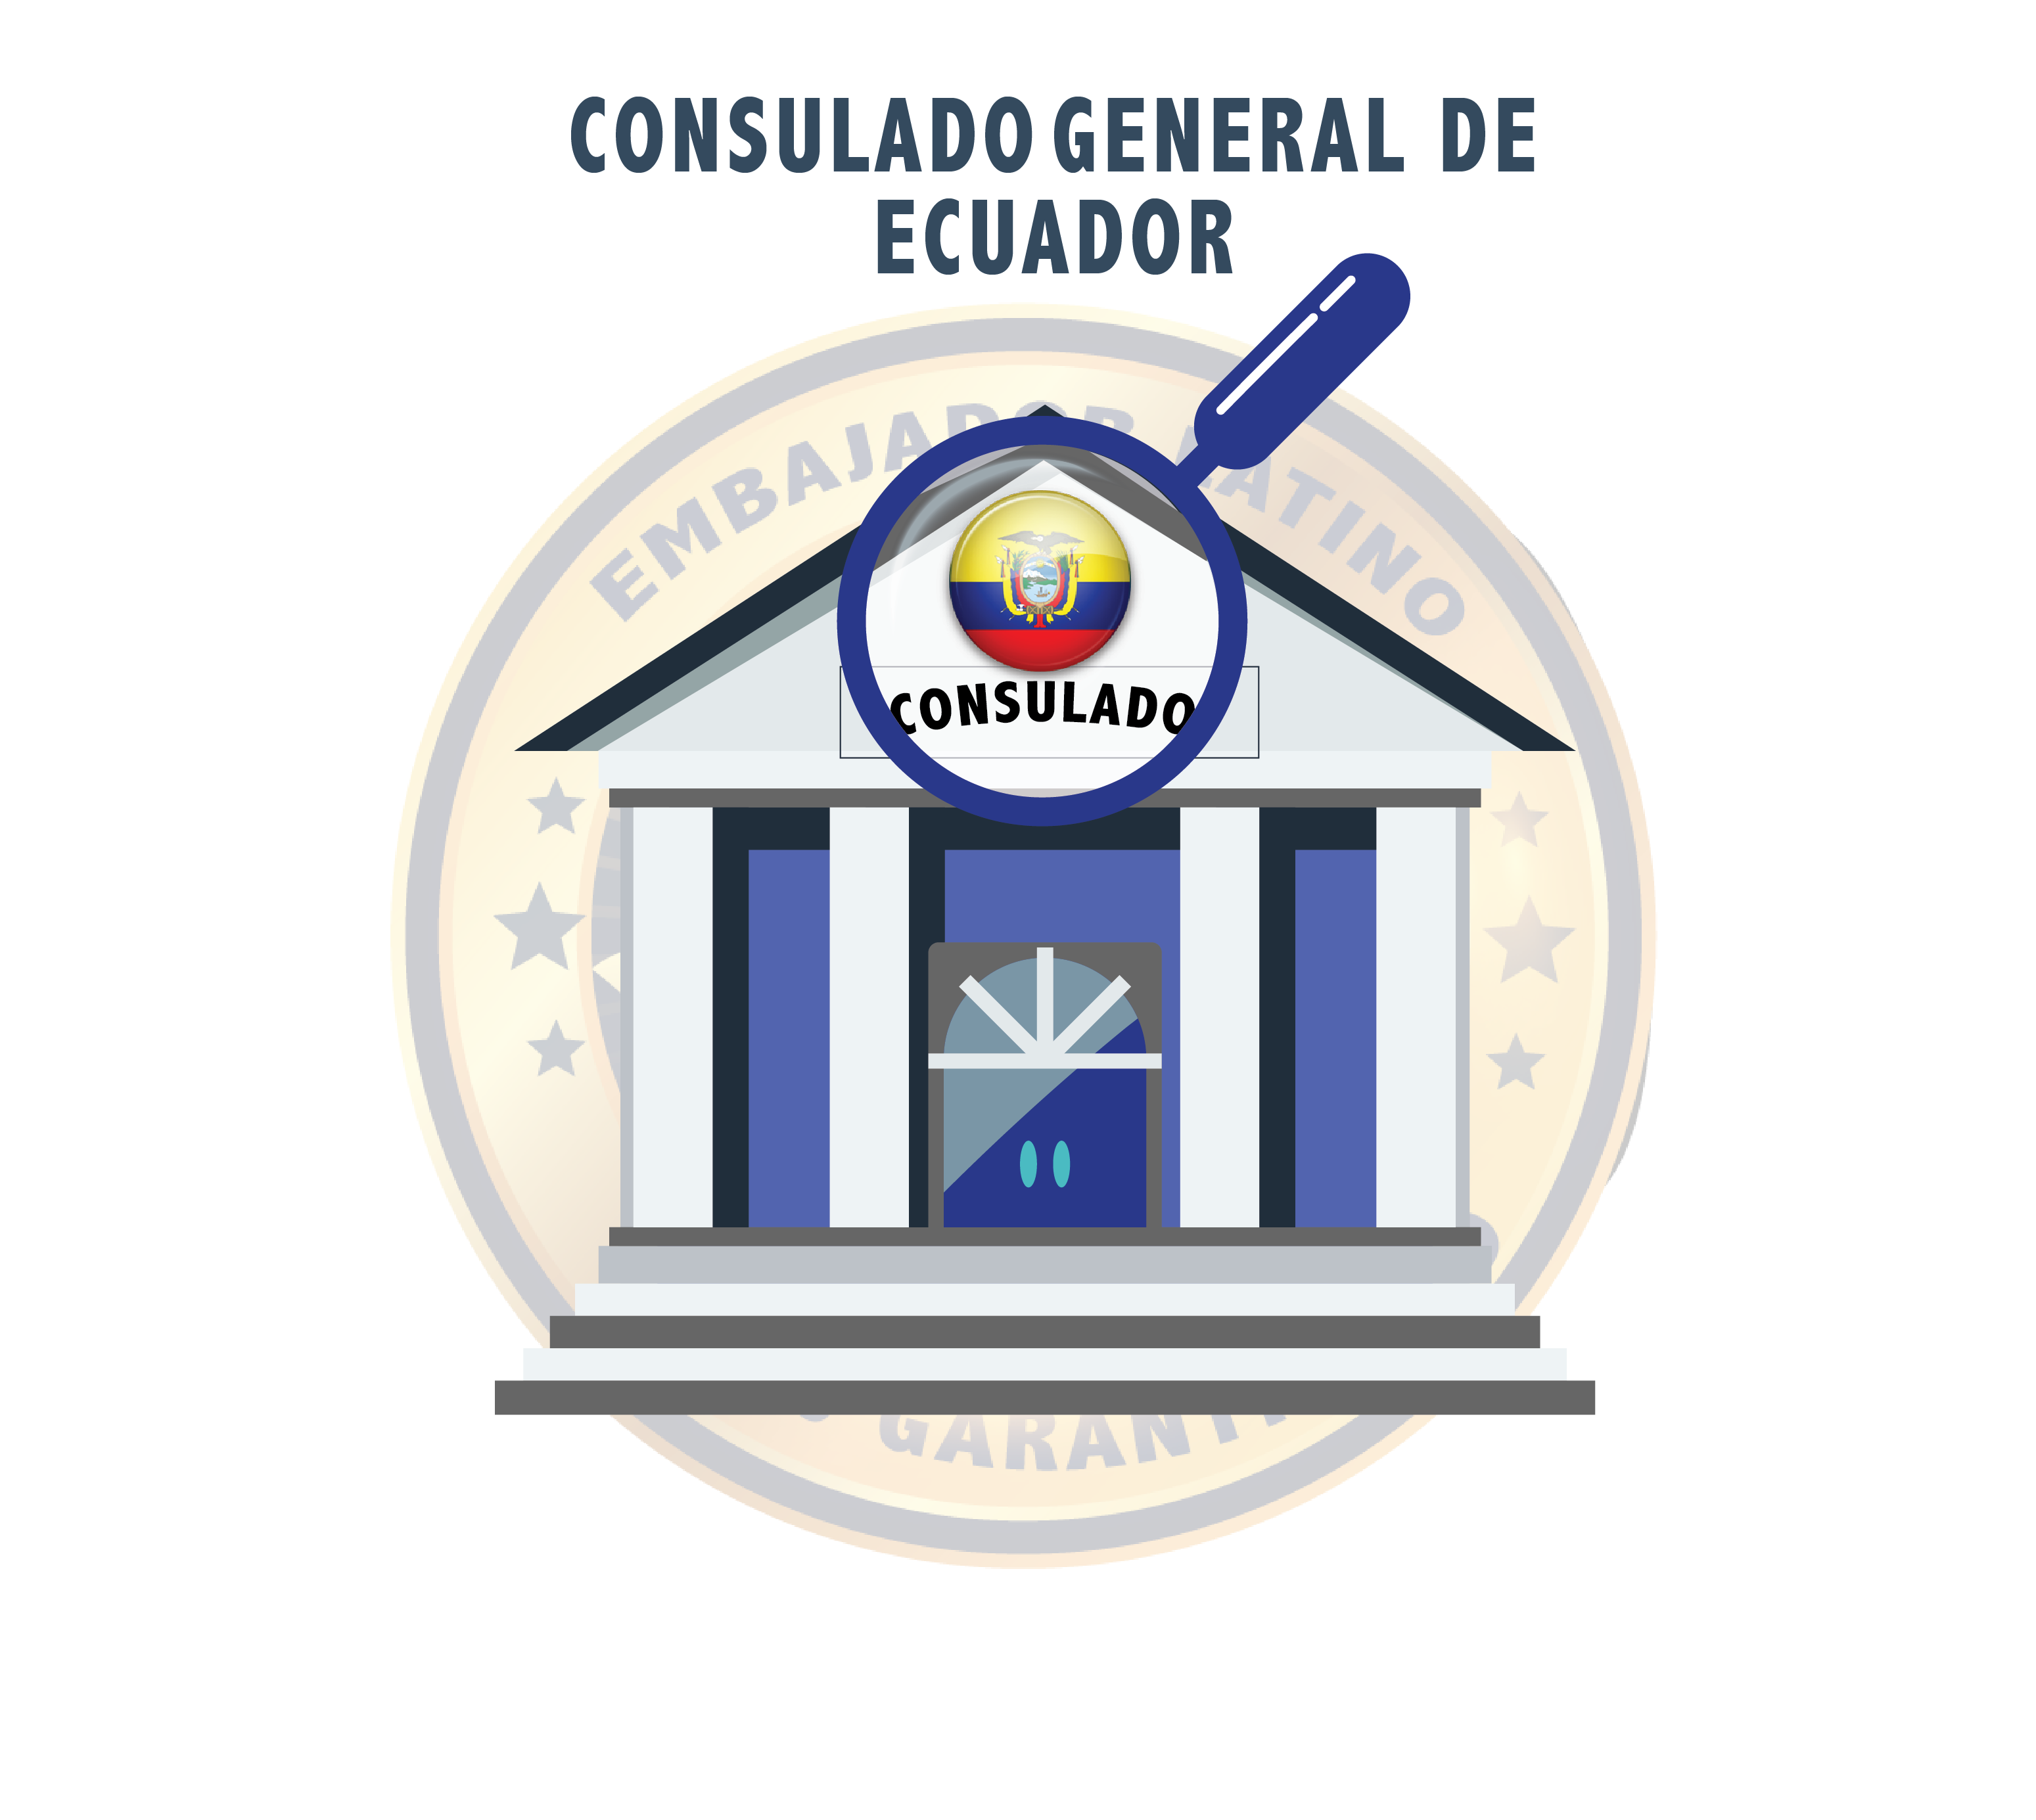 Consulate General of Ecuador